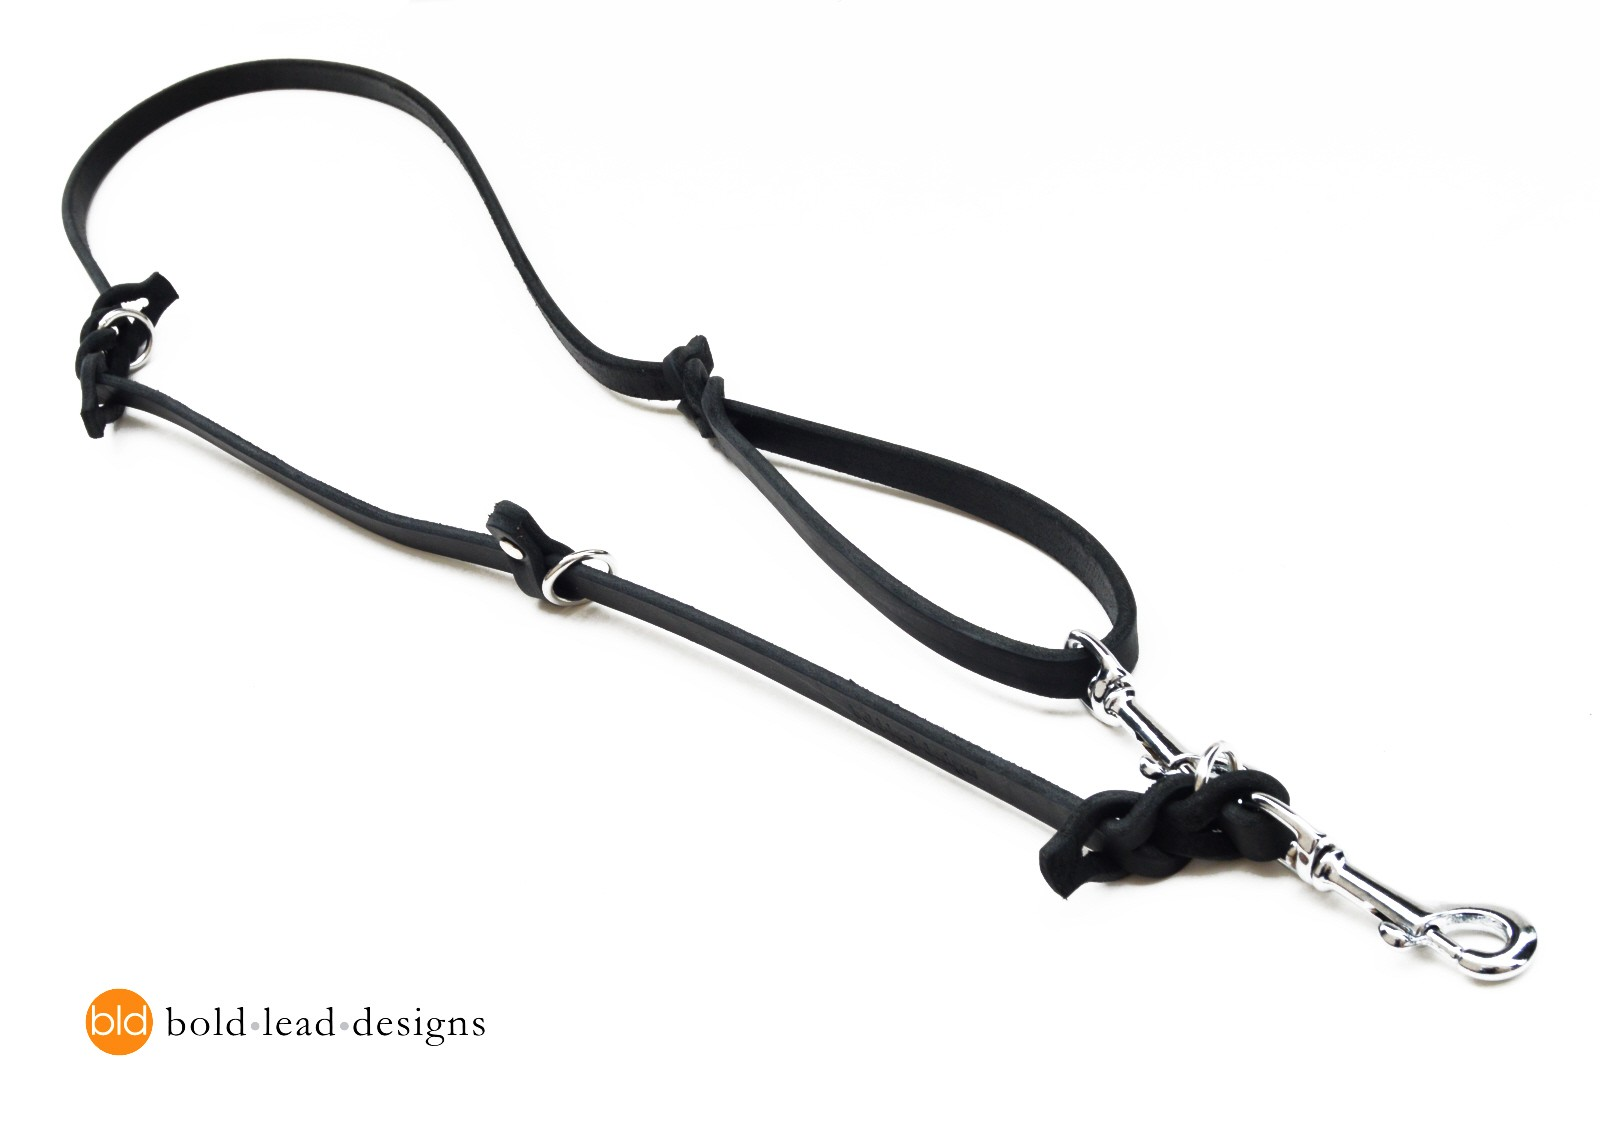 The Working Dog Lead